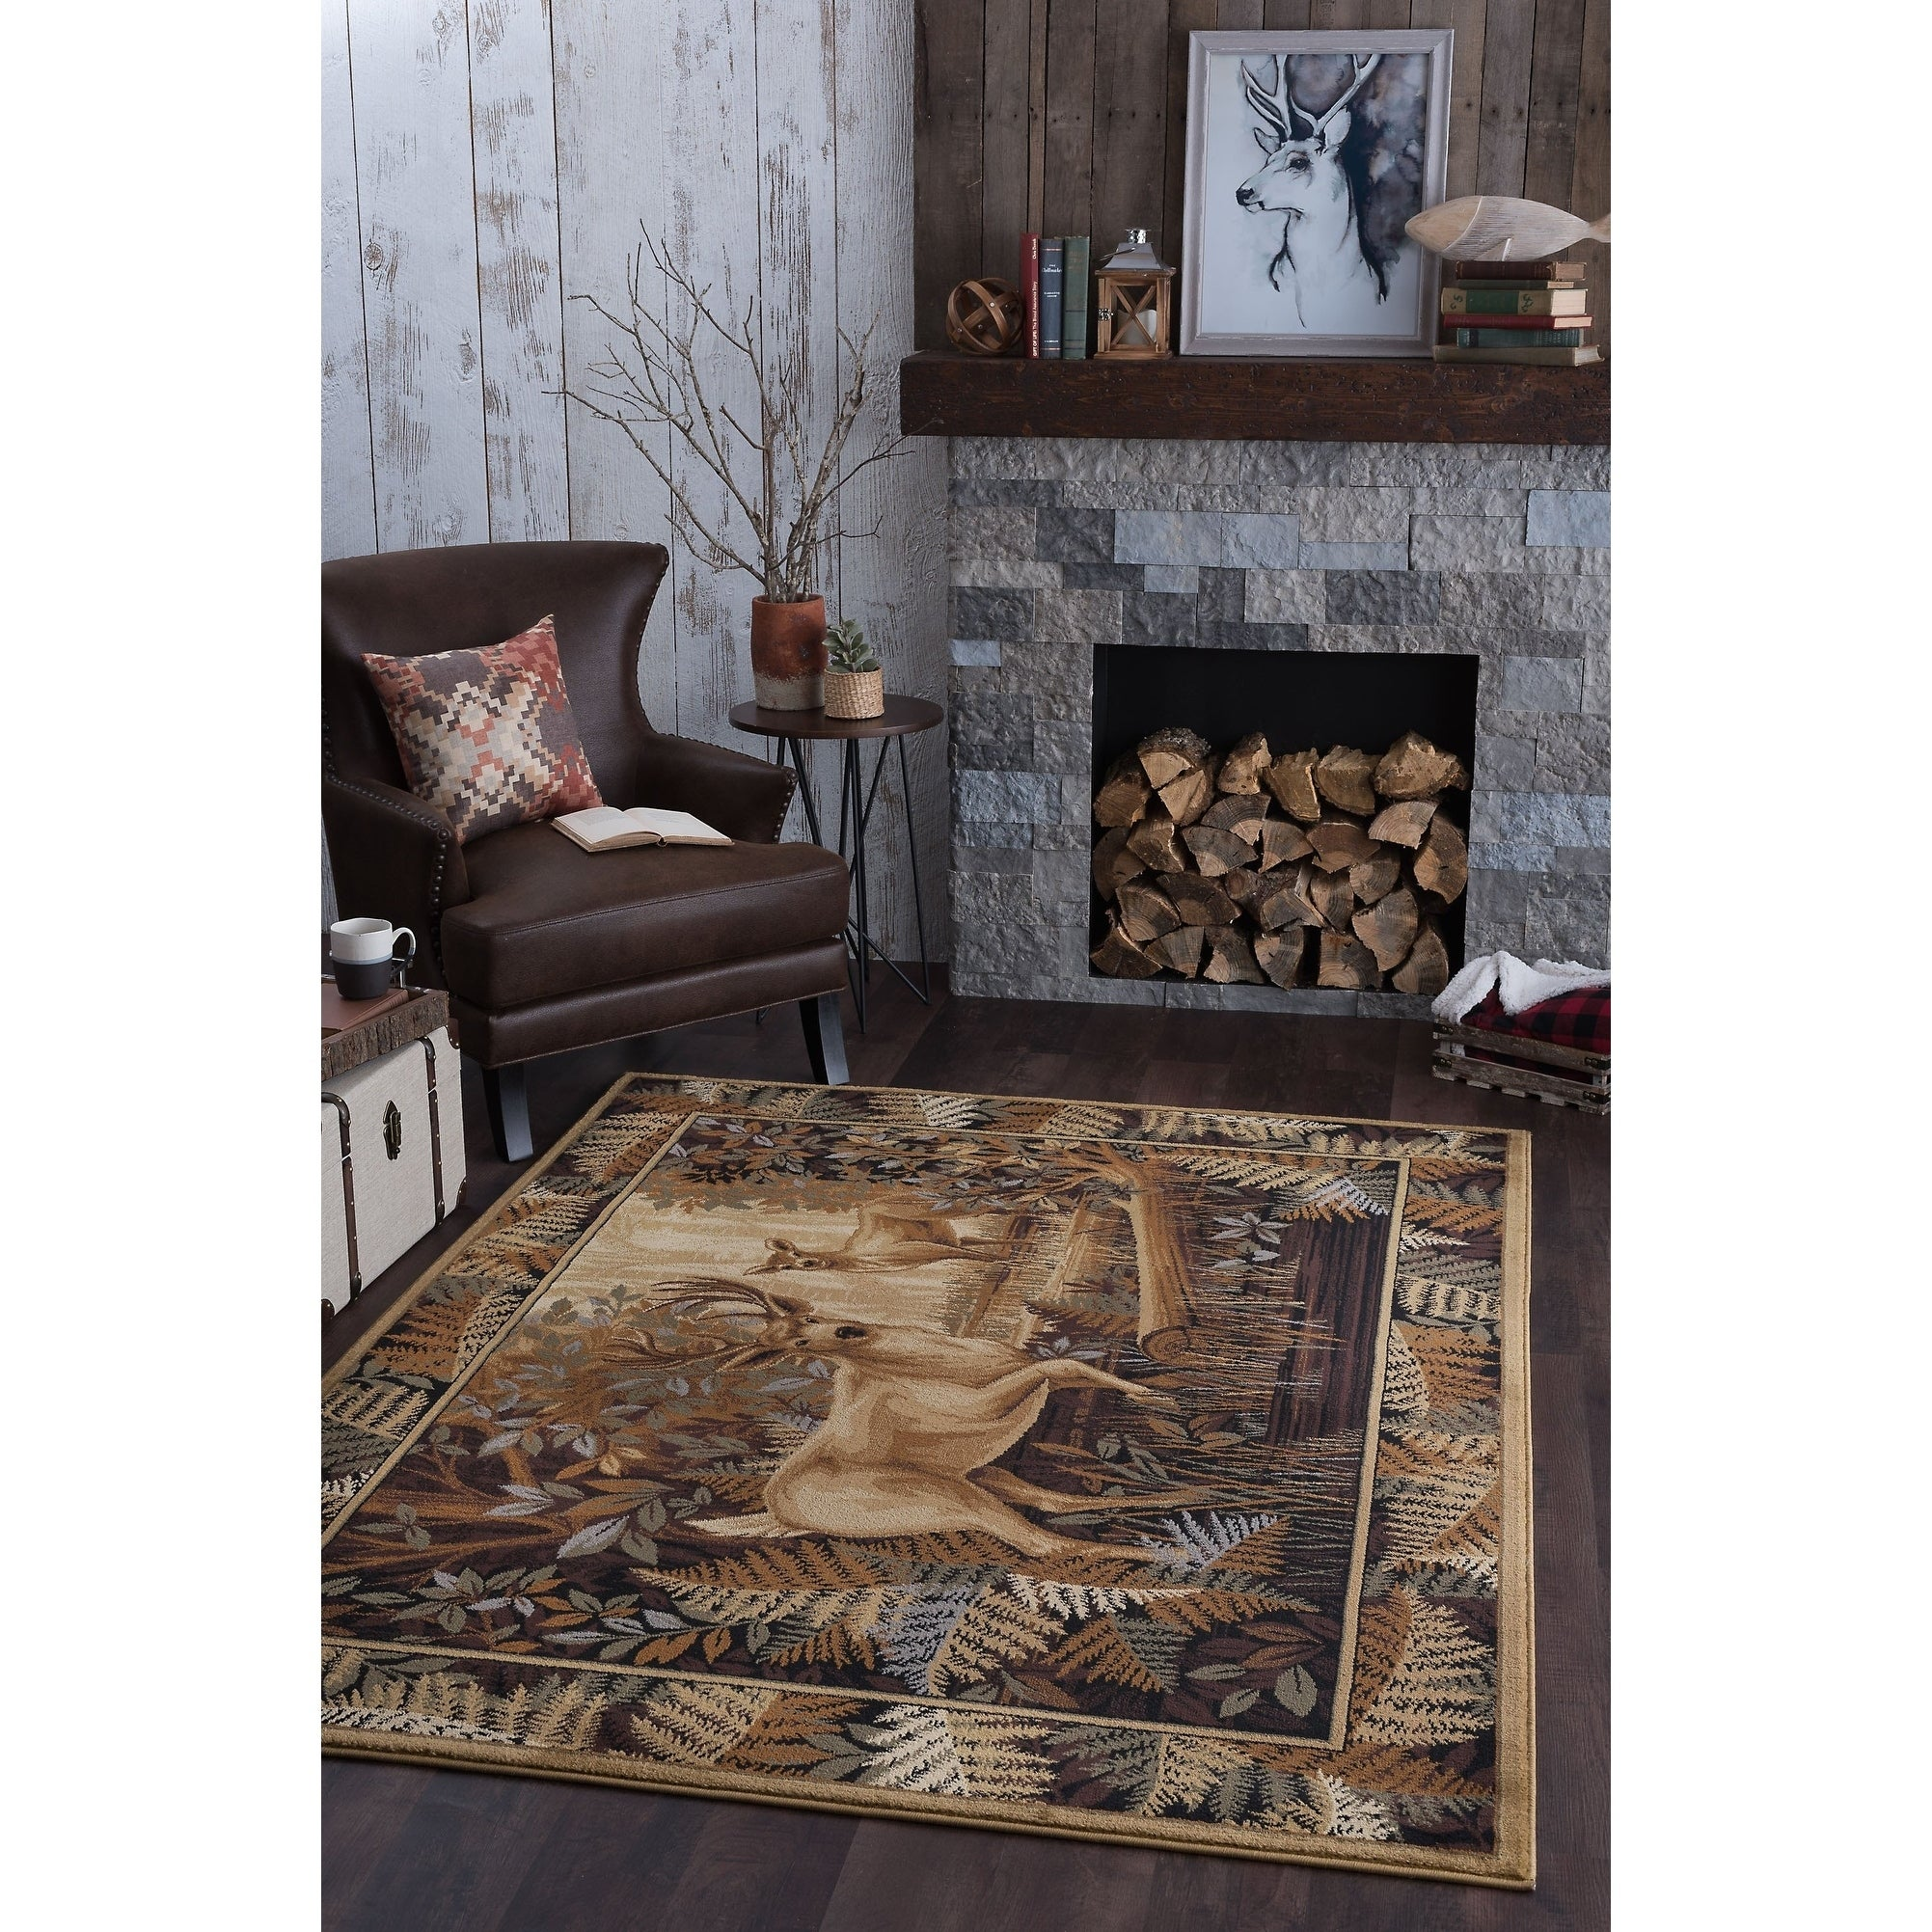 Alise Natural Beige Lodge Area Rug (5'3 x 7'3), Size 5' x...